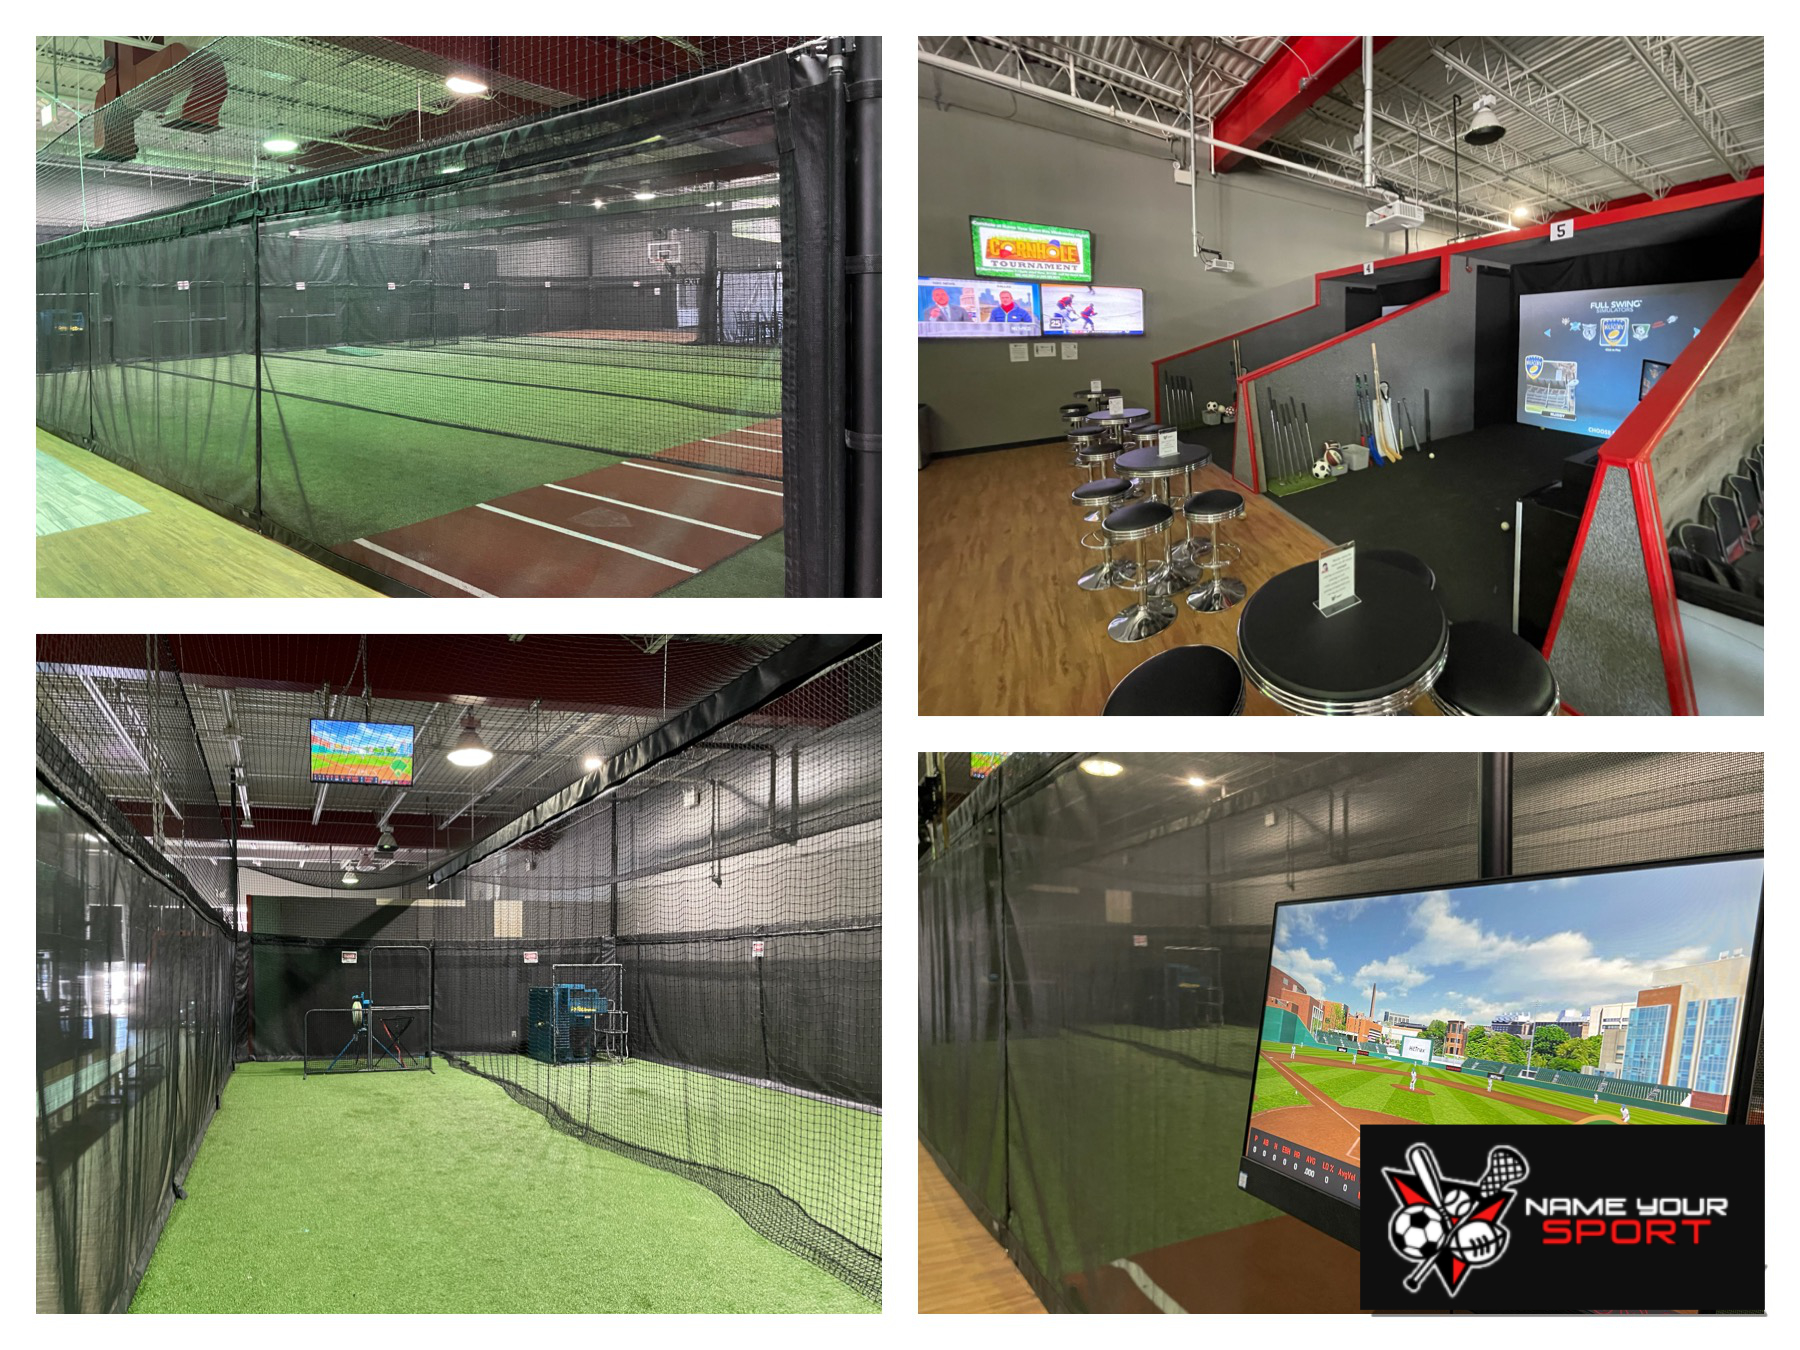 """""""Name Your Sport"""" Athletic Fun Facility in Runnemede NJ.   Destinations Photo Tour!"""